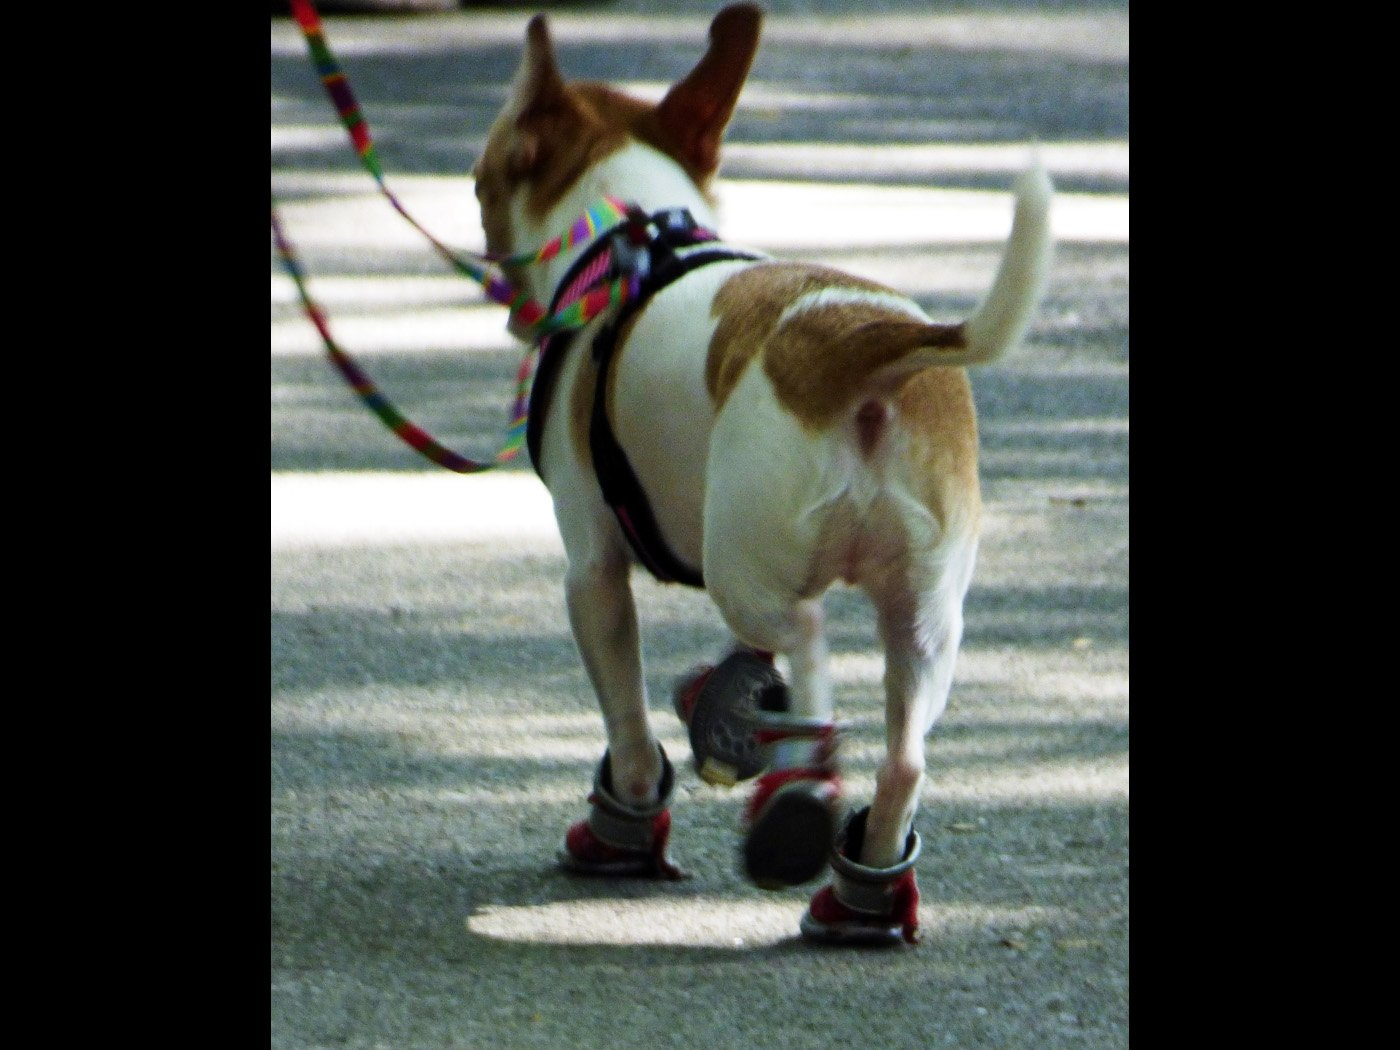 'HOT DOG' in shoes to keep feet cool in Central Park